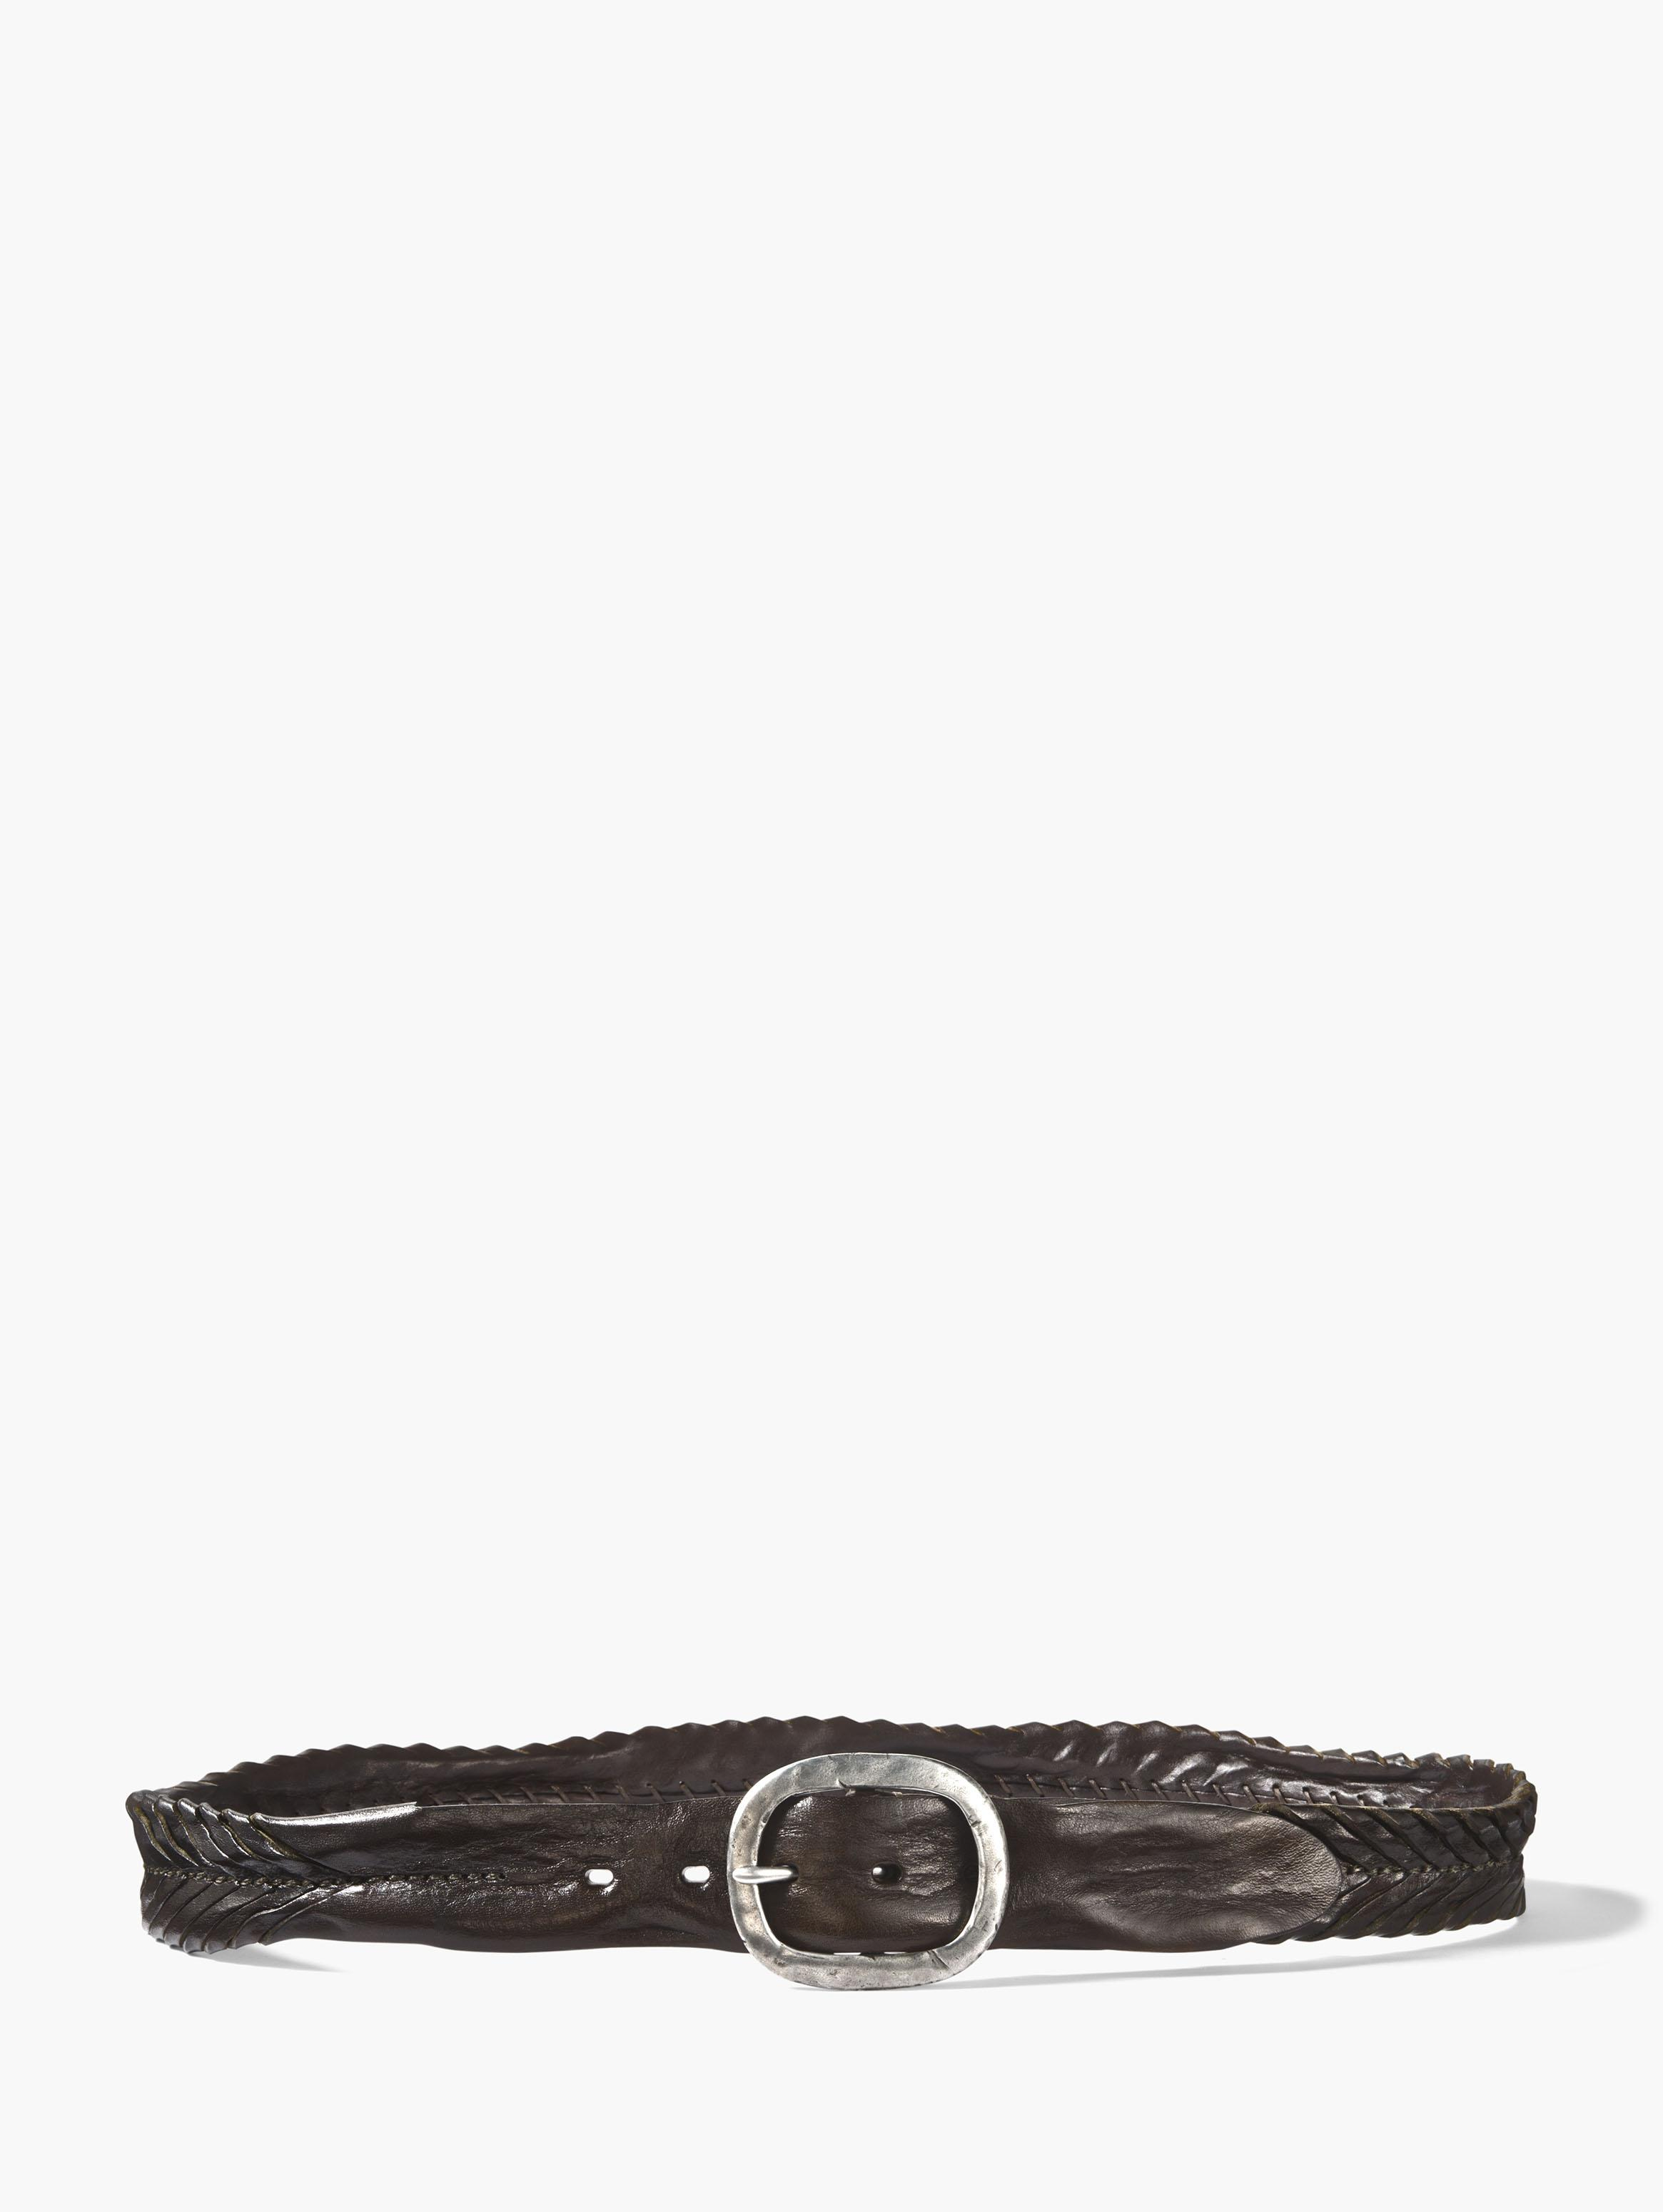 designer belt sale men 25jq  Braided Belt